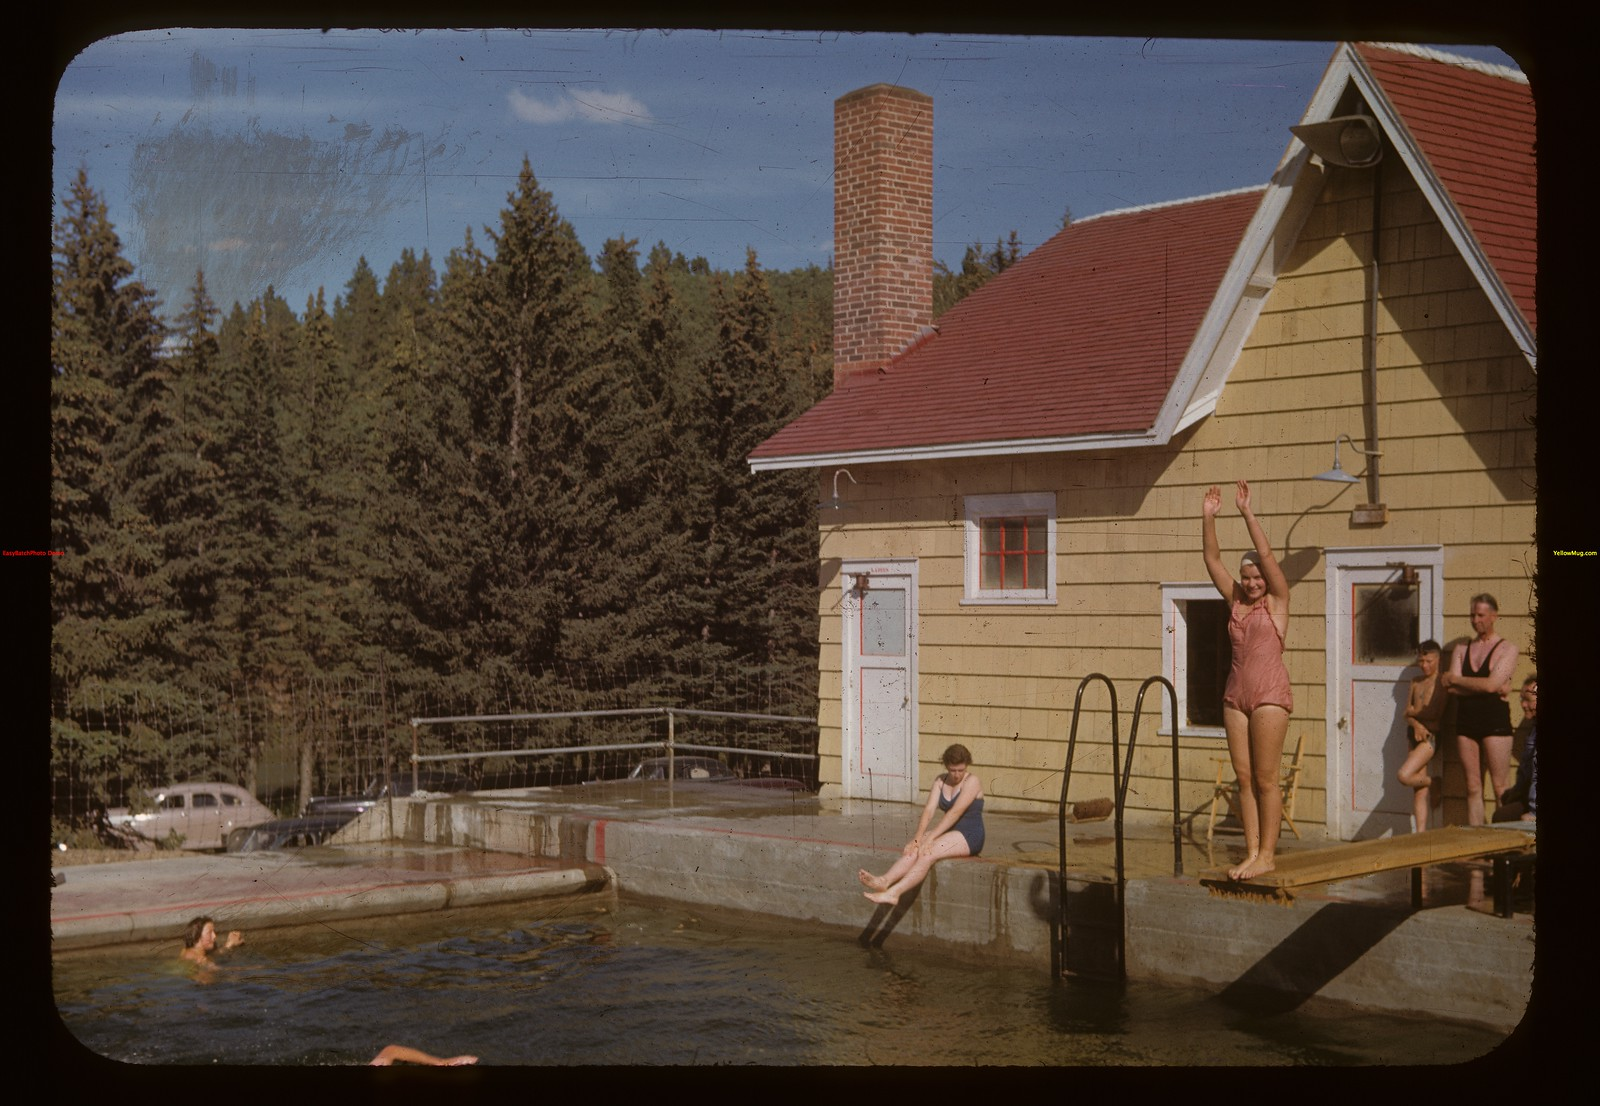 CGIT - at Cypress Hills swimming pool	 Cypress Hills	 08/01/1955